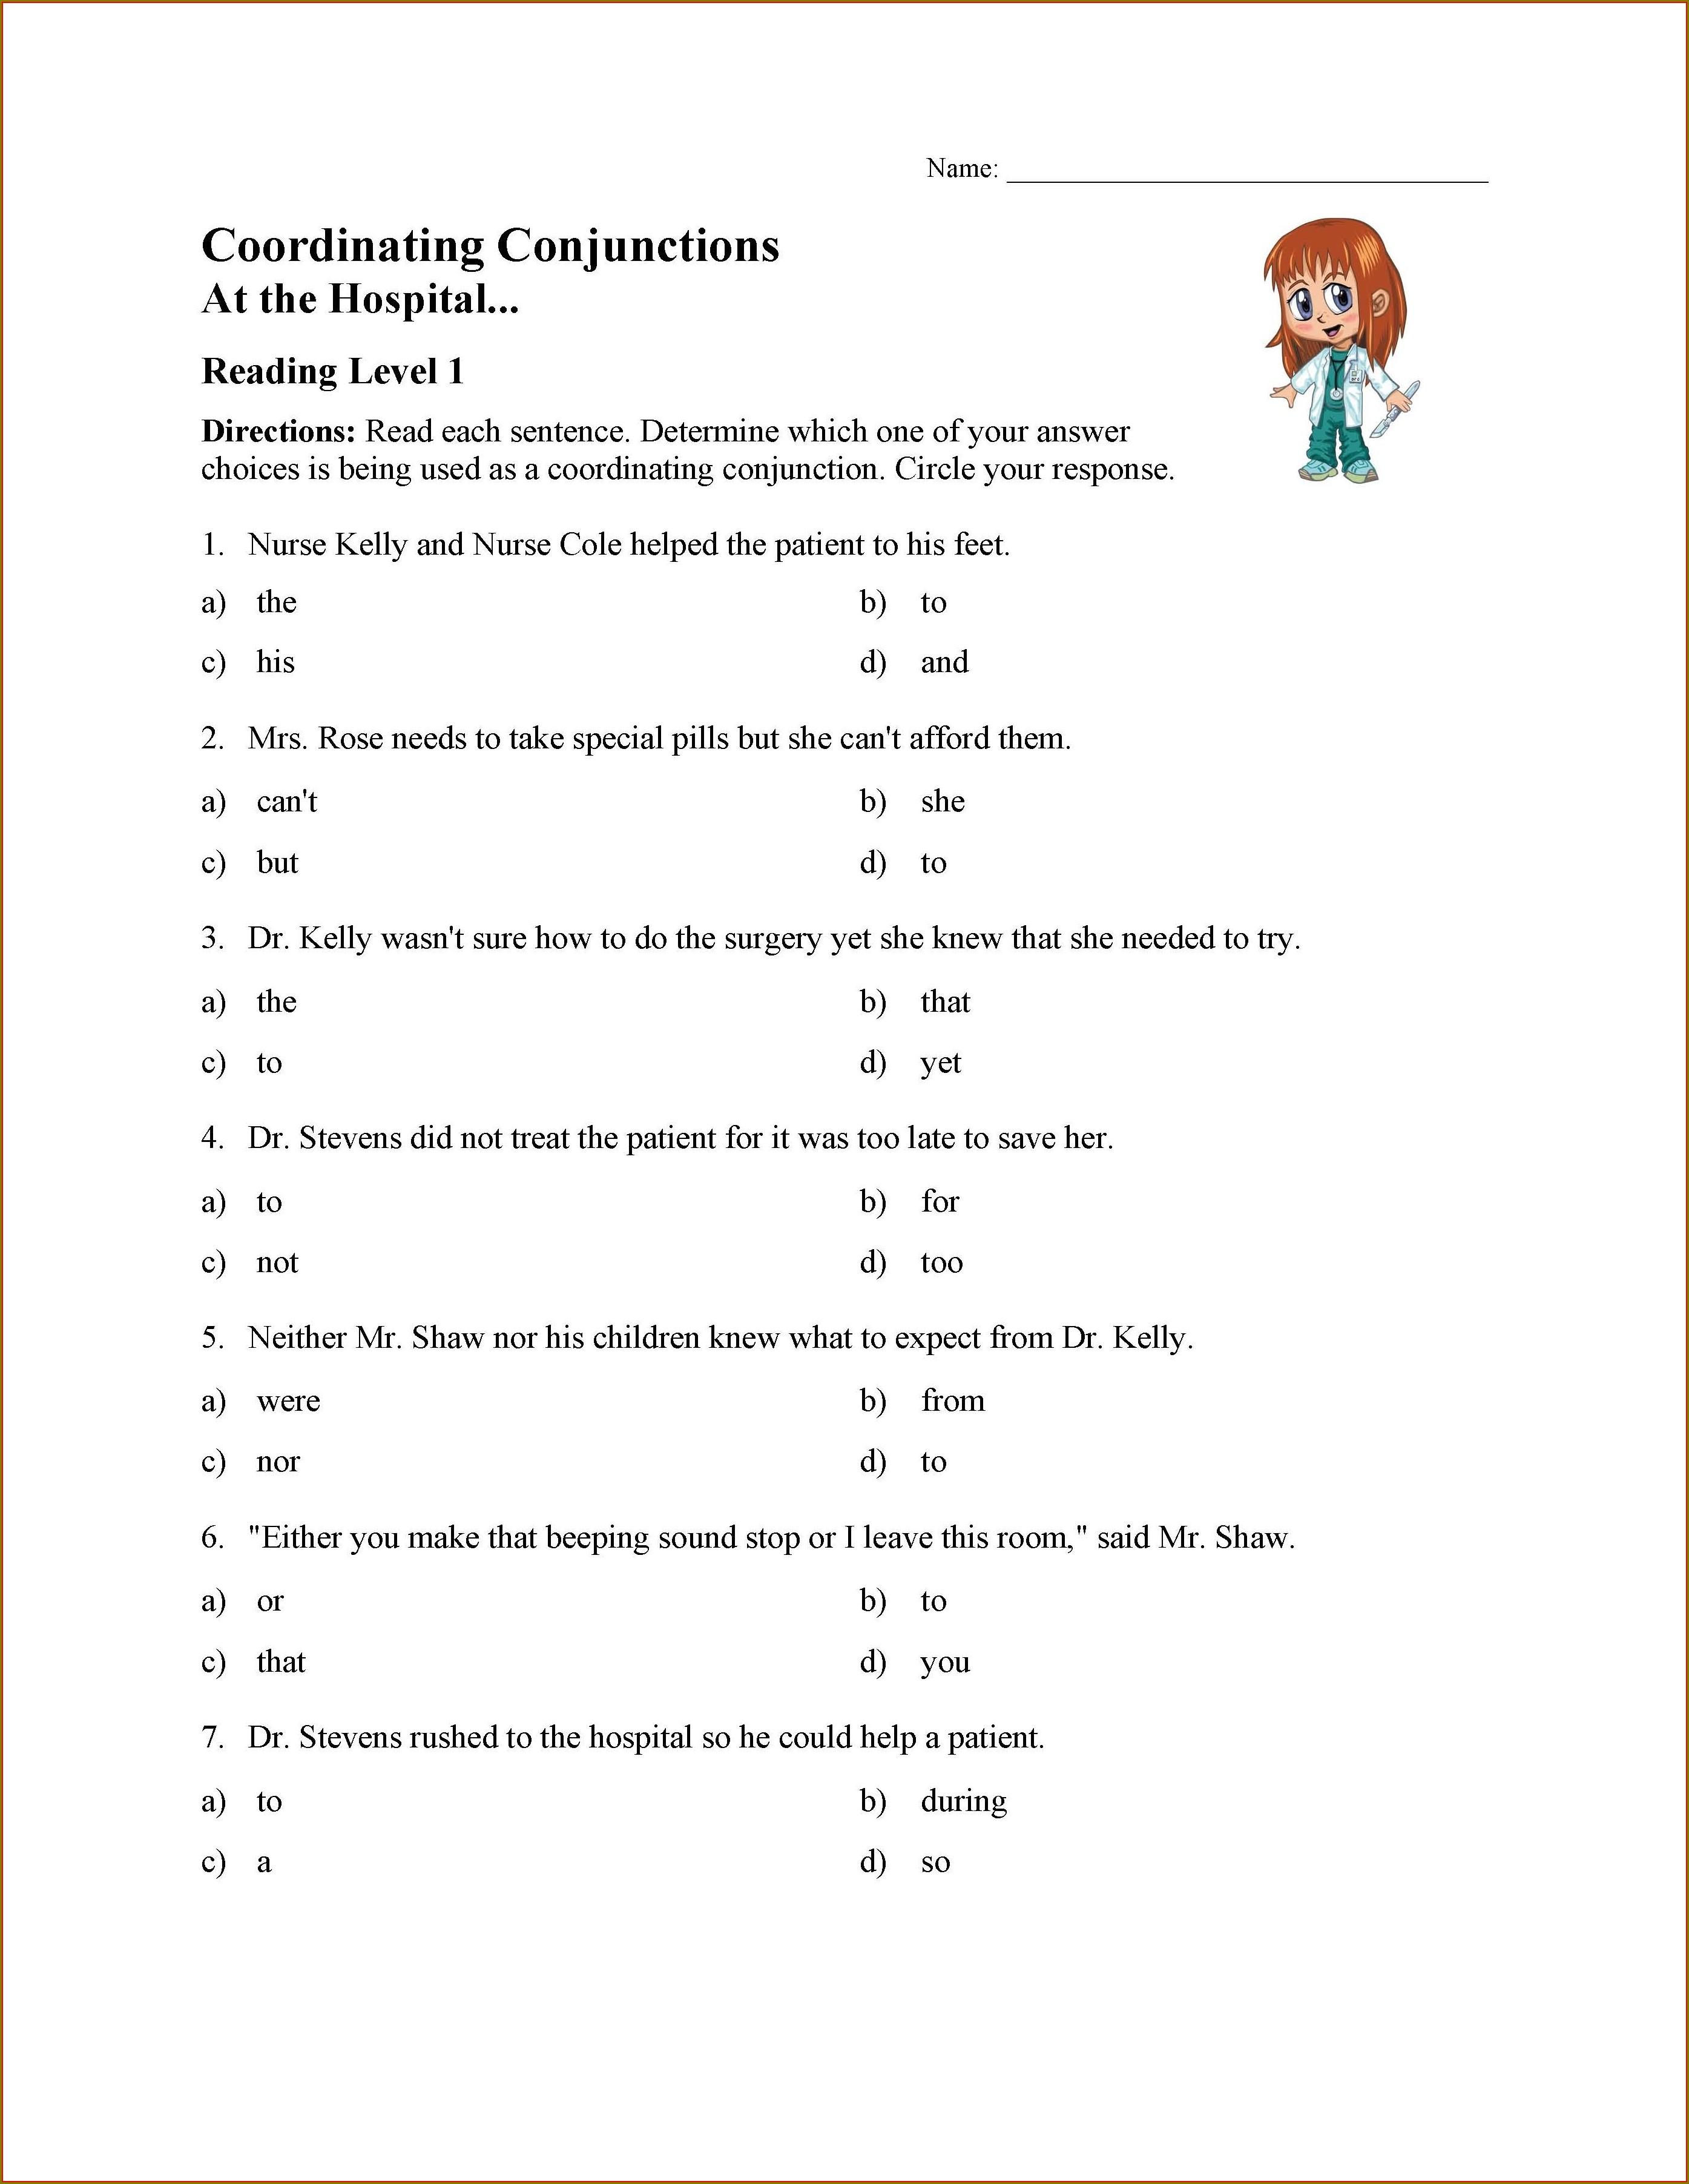 5th Grade Coordinating Conjunctions Worksheet